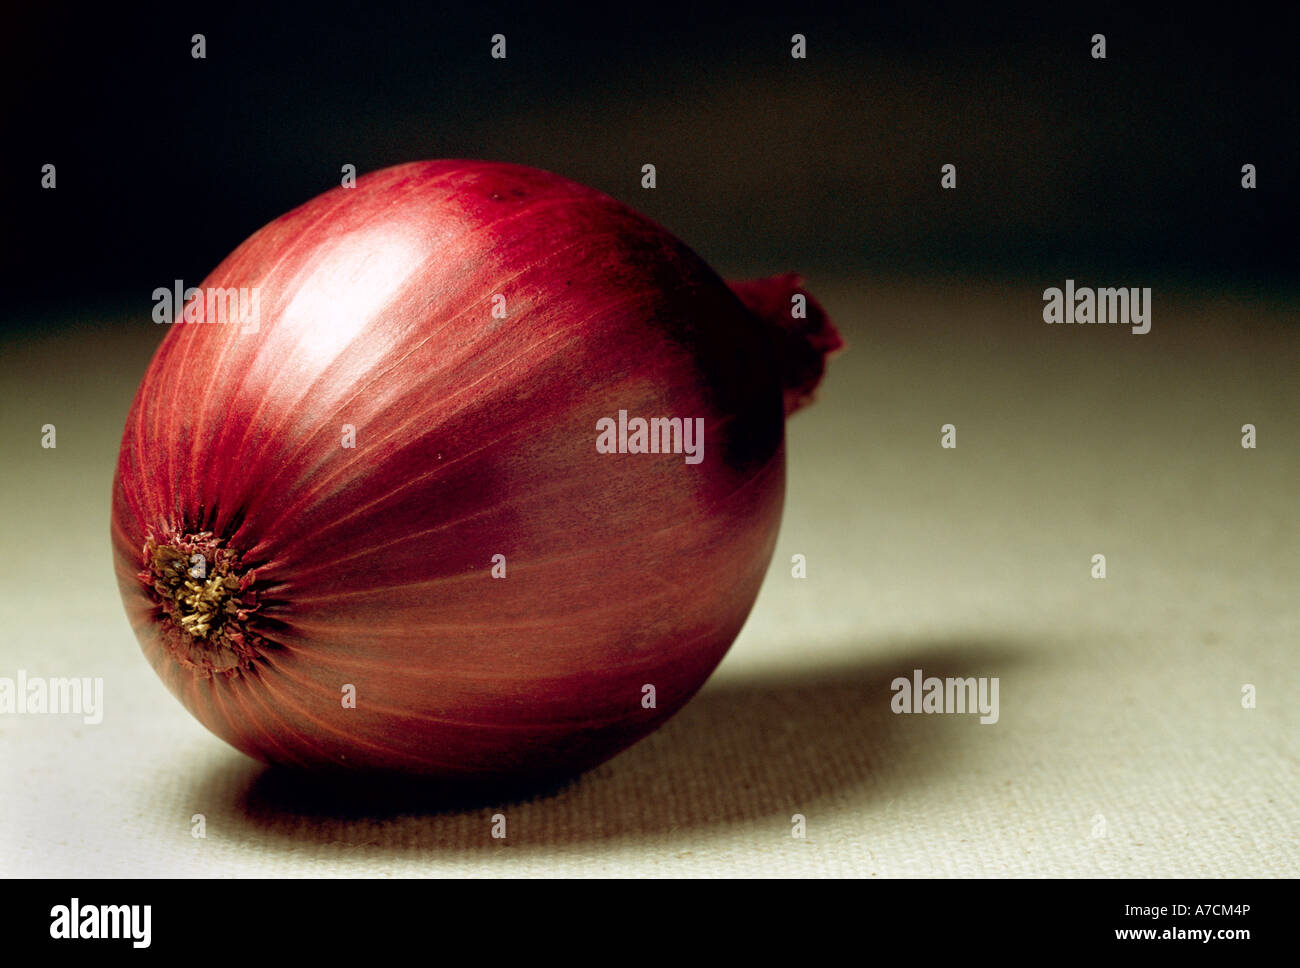 Red Onion. - Stock Image